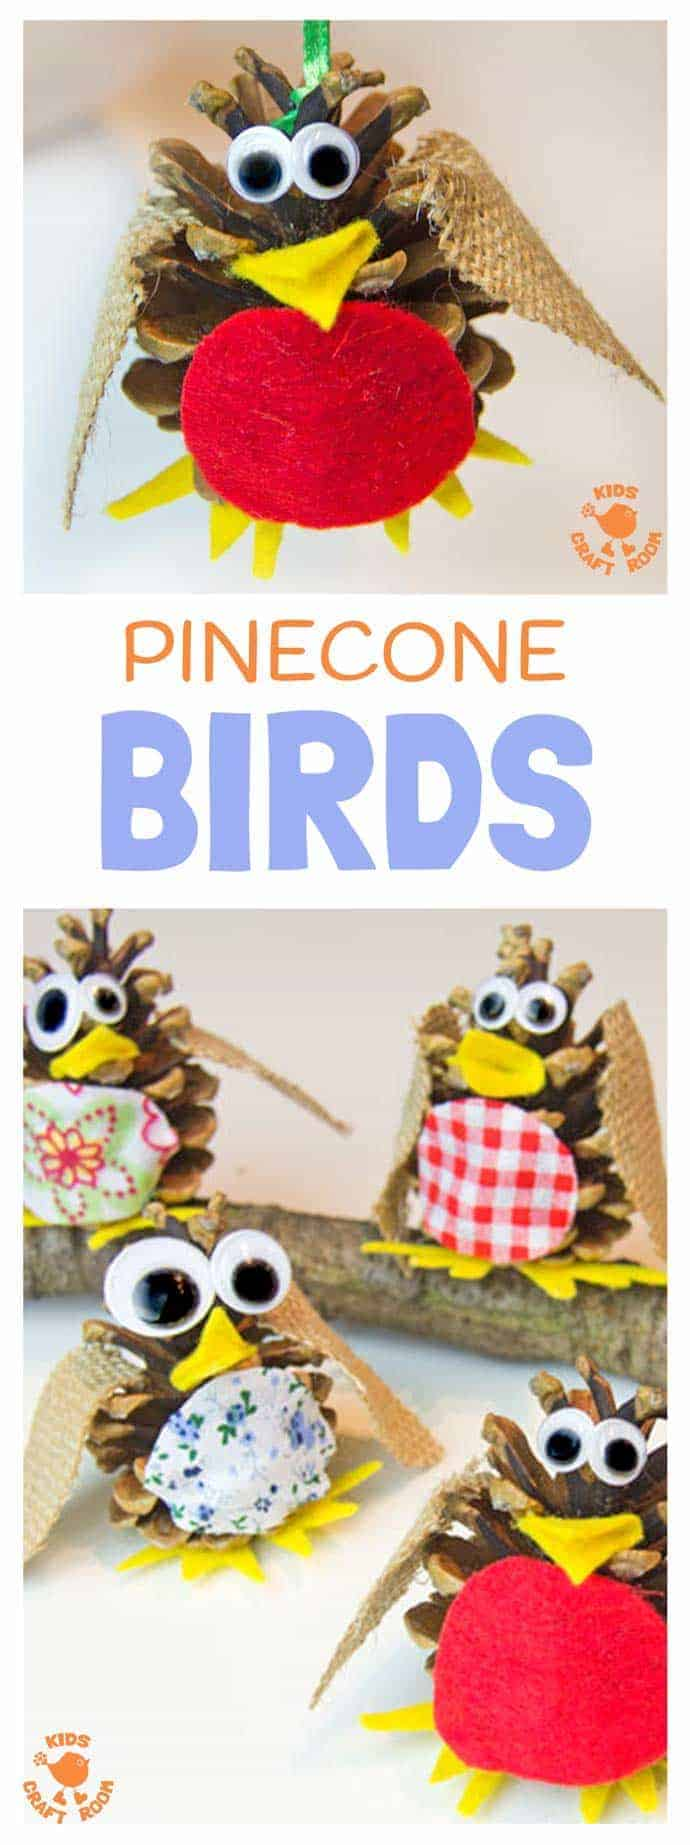 Pinecone Bird Ornament by Kids Craft Room | The best ever kids Christmas Craft Ideas. So many fun ideas to get the kids involved in the holiday fun!